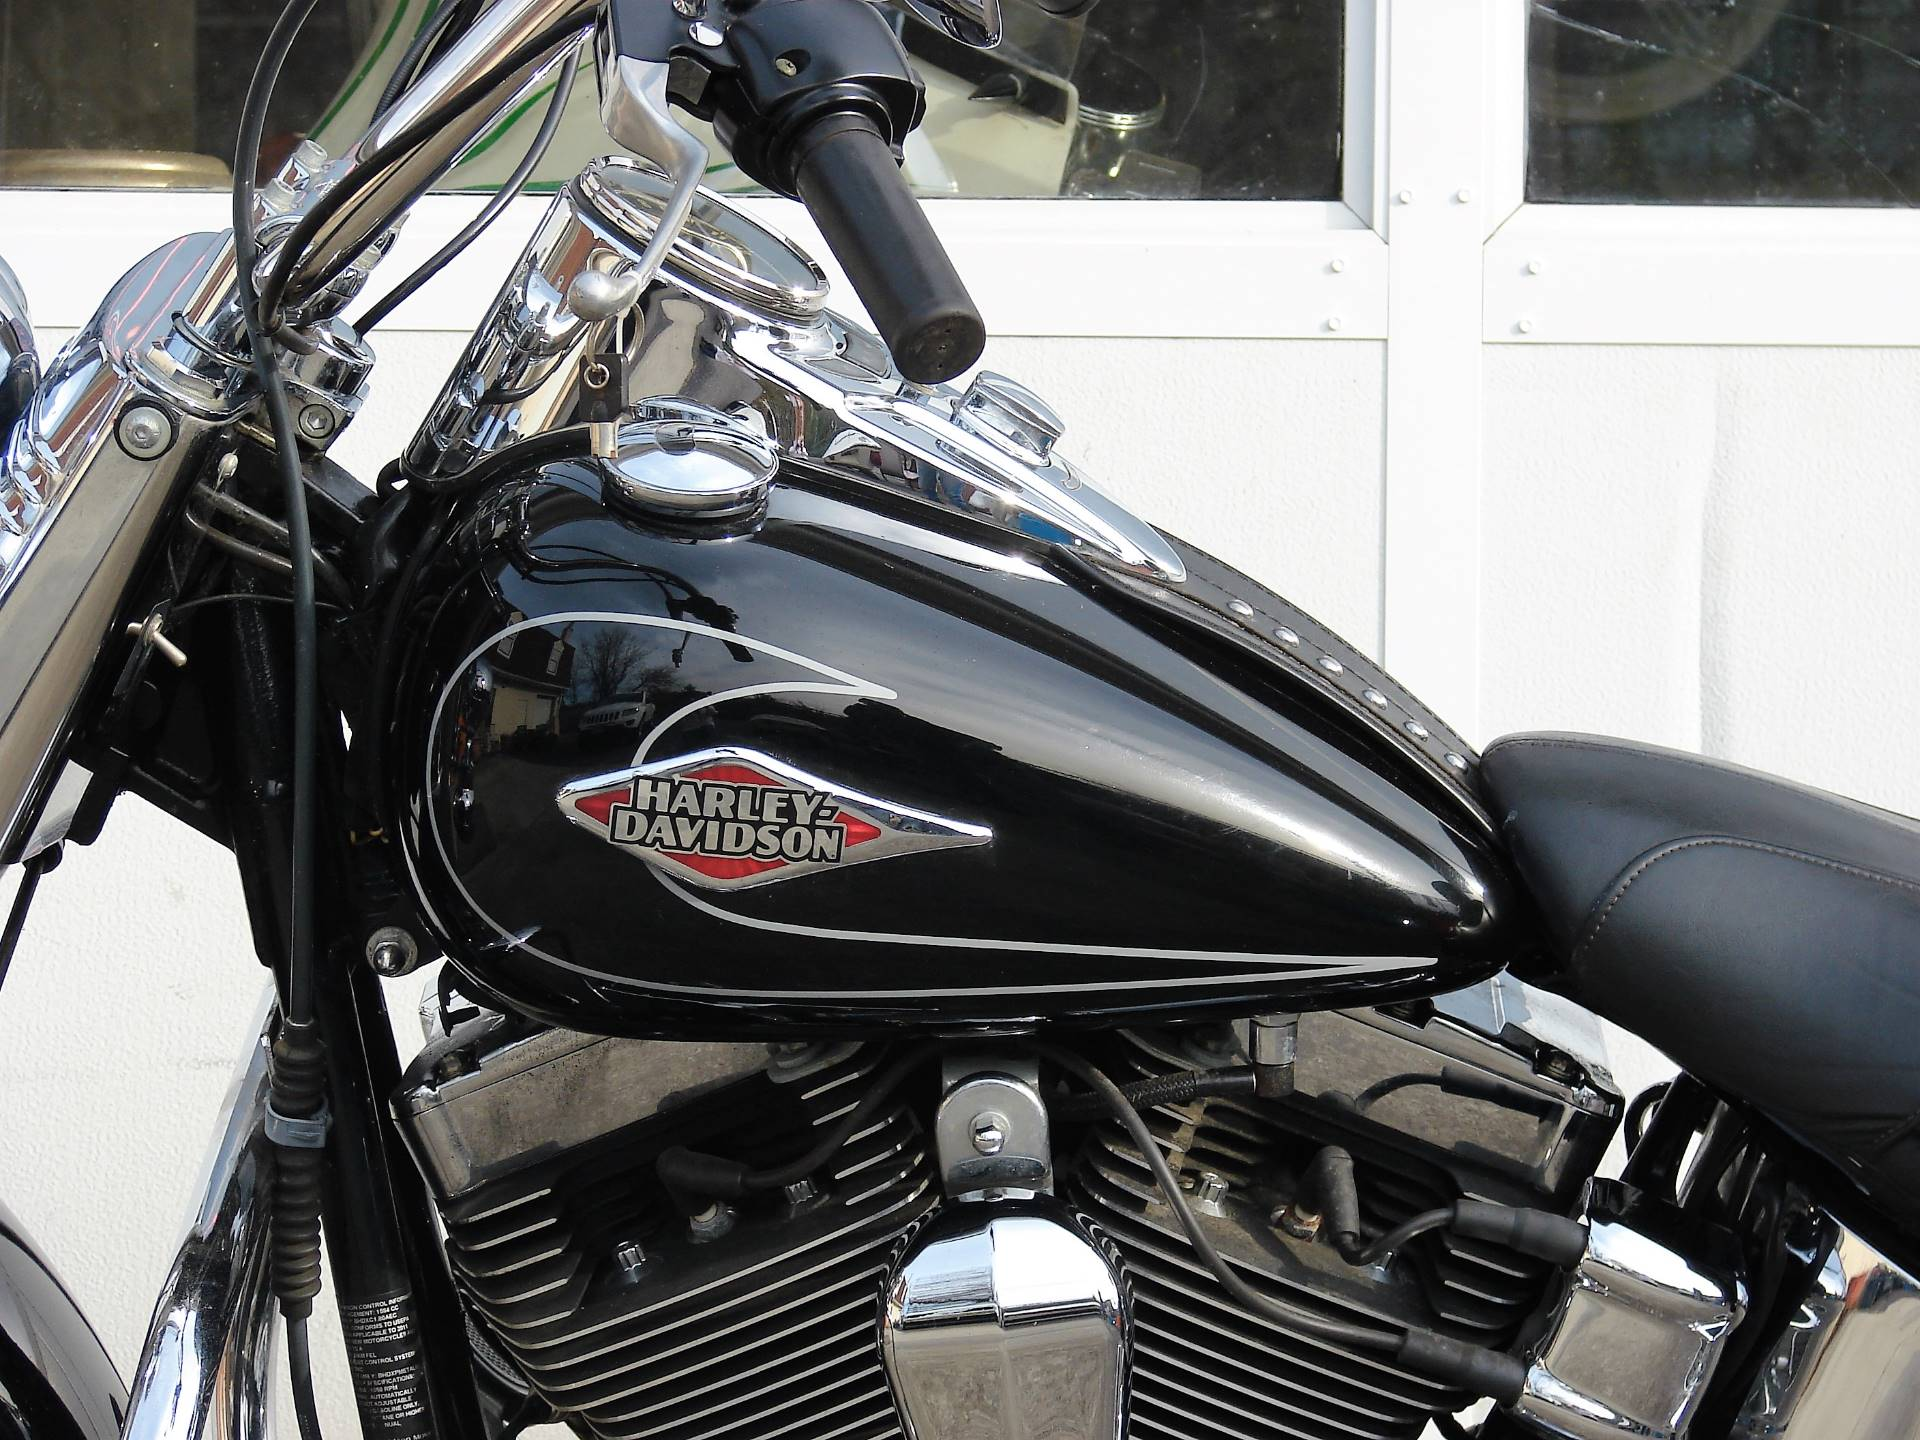 2011 Harley-Davidson FLSTC Heritage Softail in Williamstown, New Jersey - Photo 9